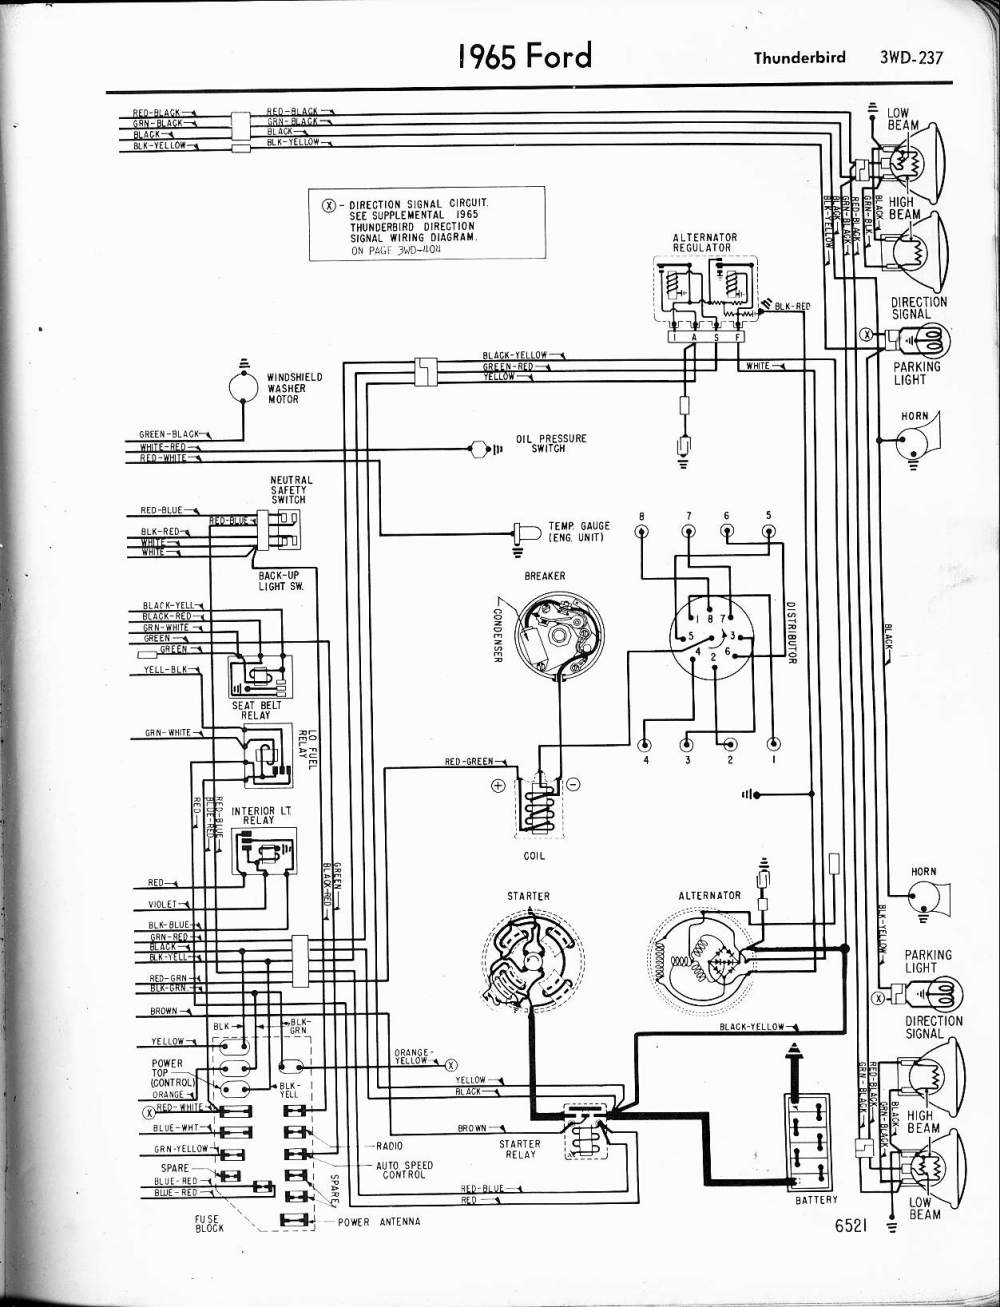 medium resolution of 1965 ford wiring diagrams wiring diagram blog57 65 ford wiring diagrams 68 ford voltage regulator wiring